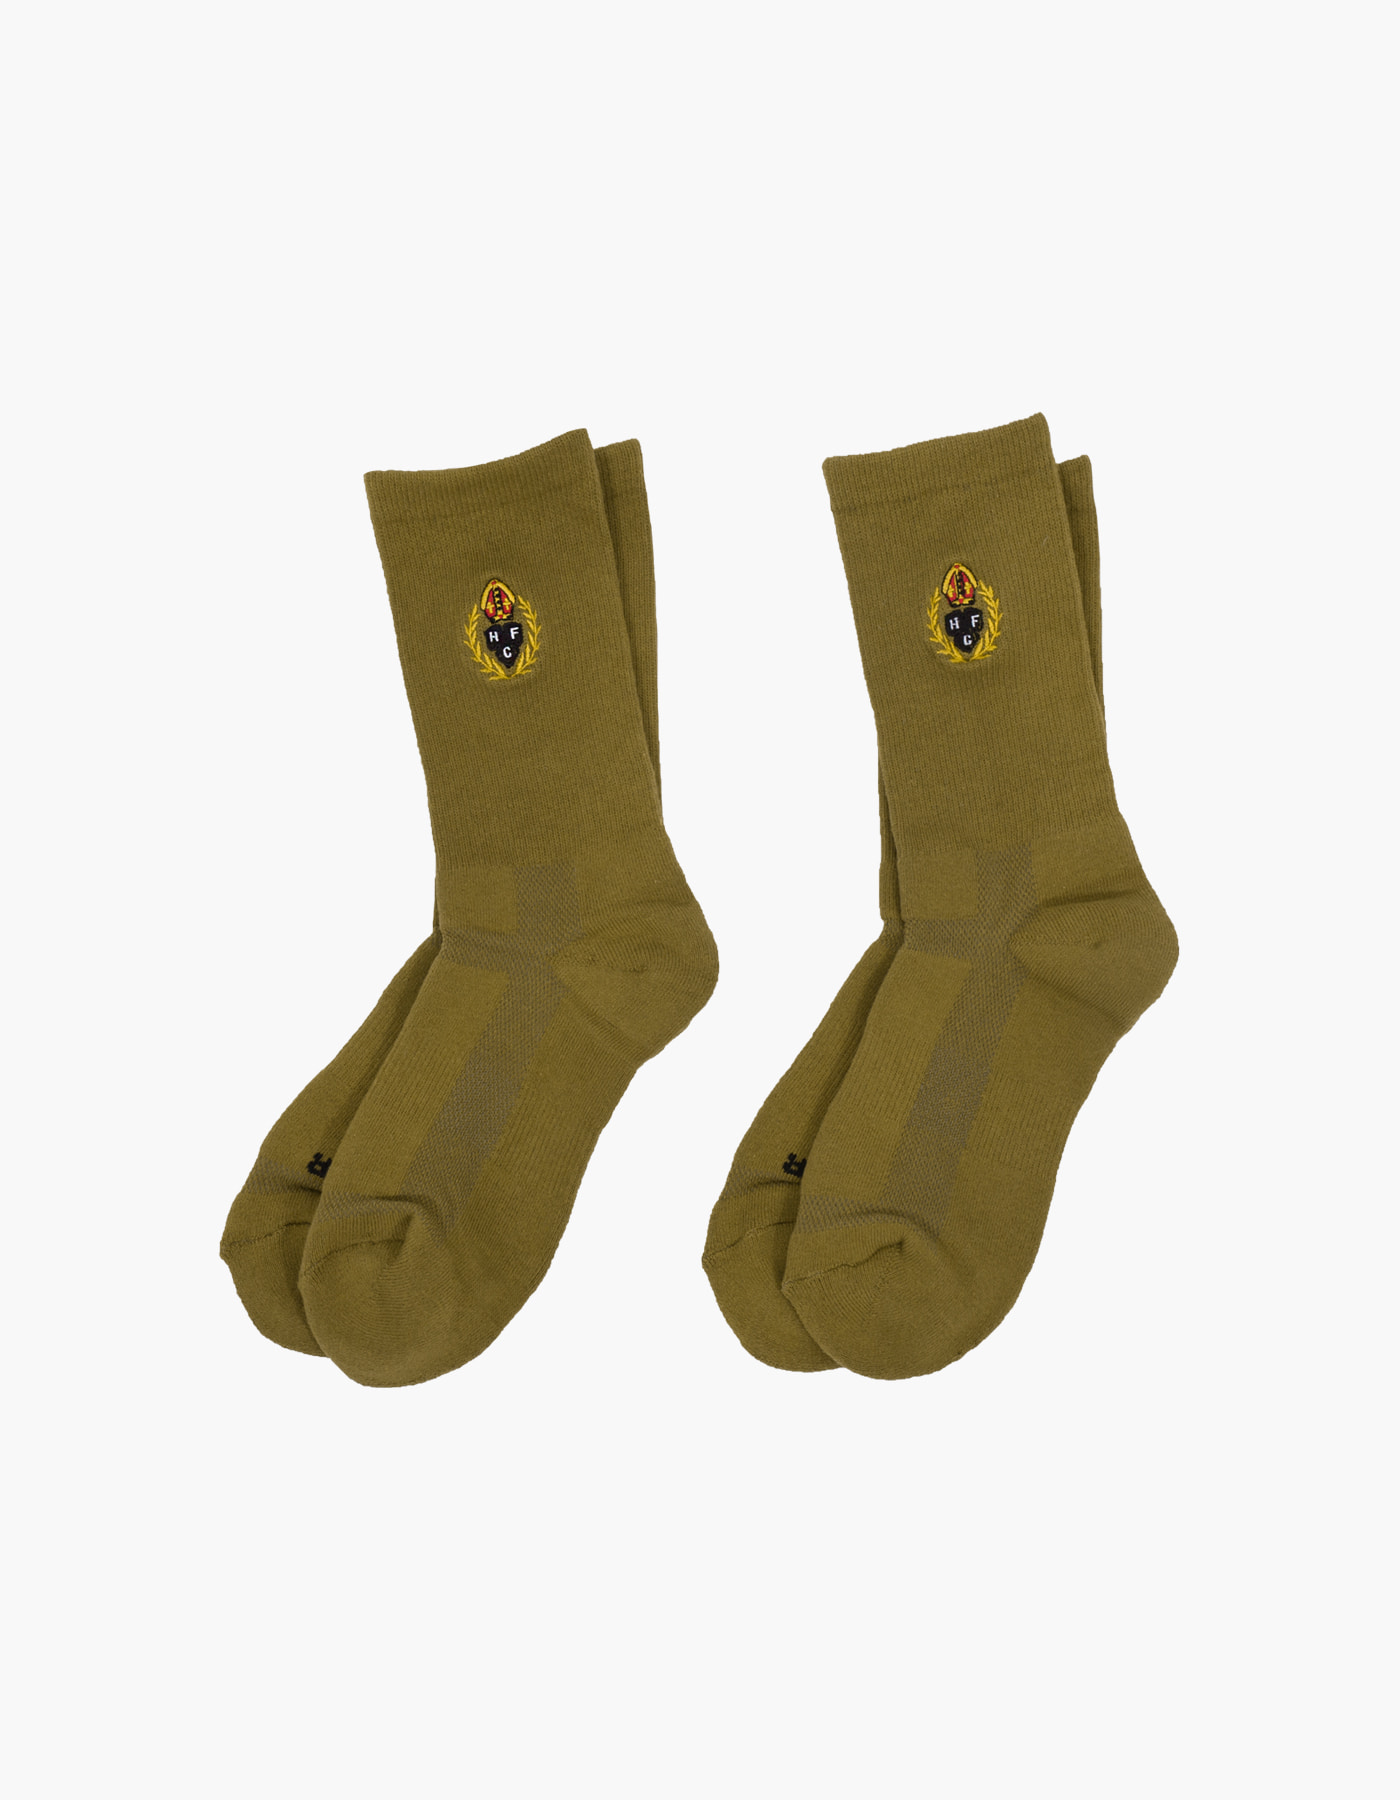 HFC CREST 5 FUNCTION SOCKS (2-PACK) / OLIVE